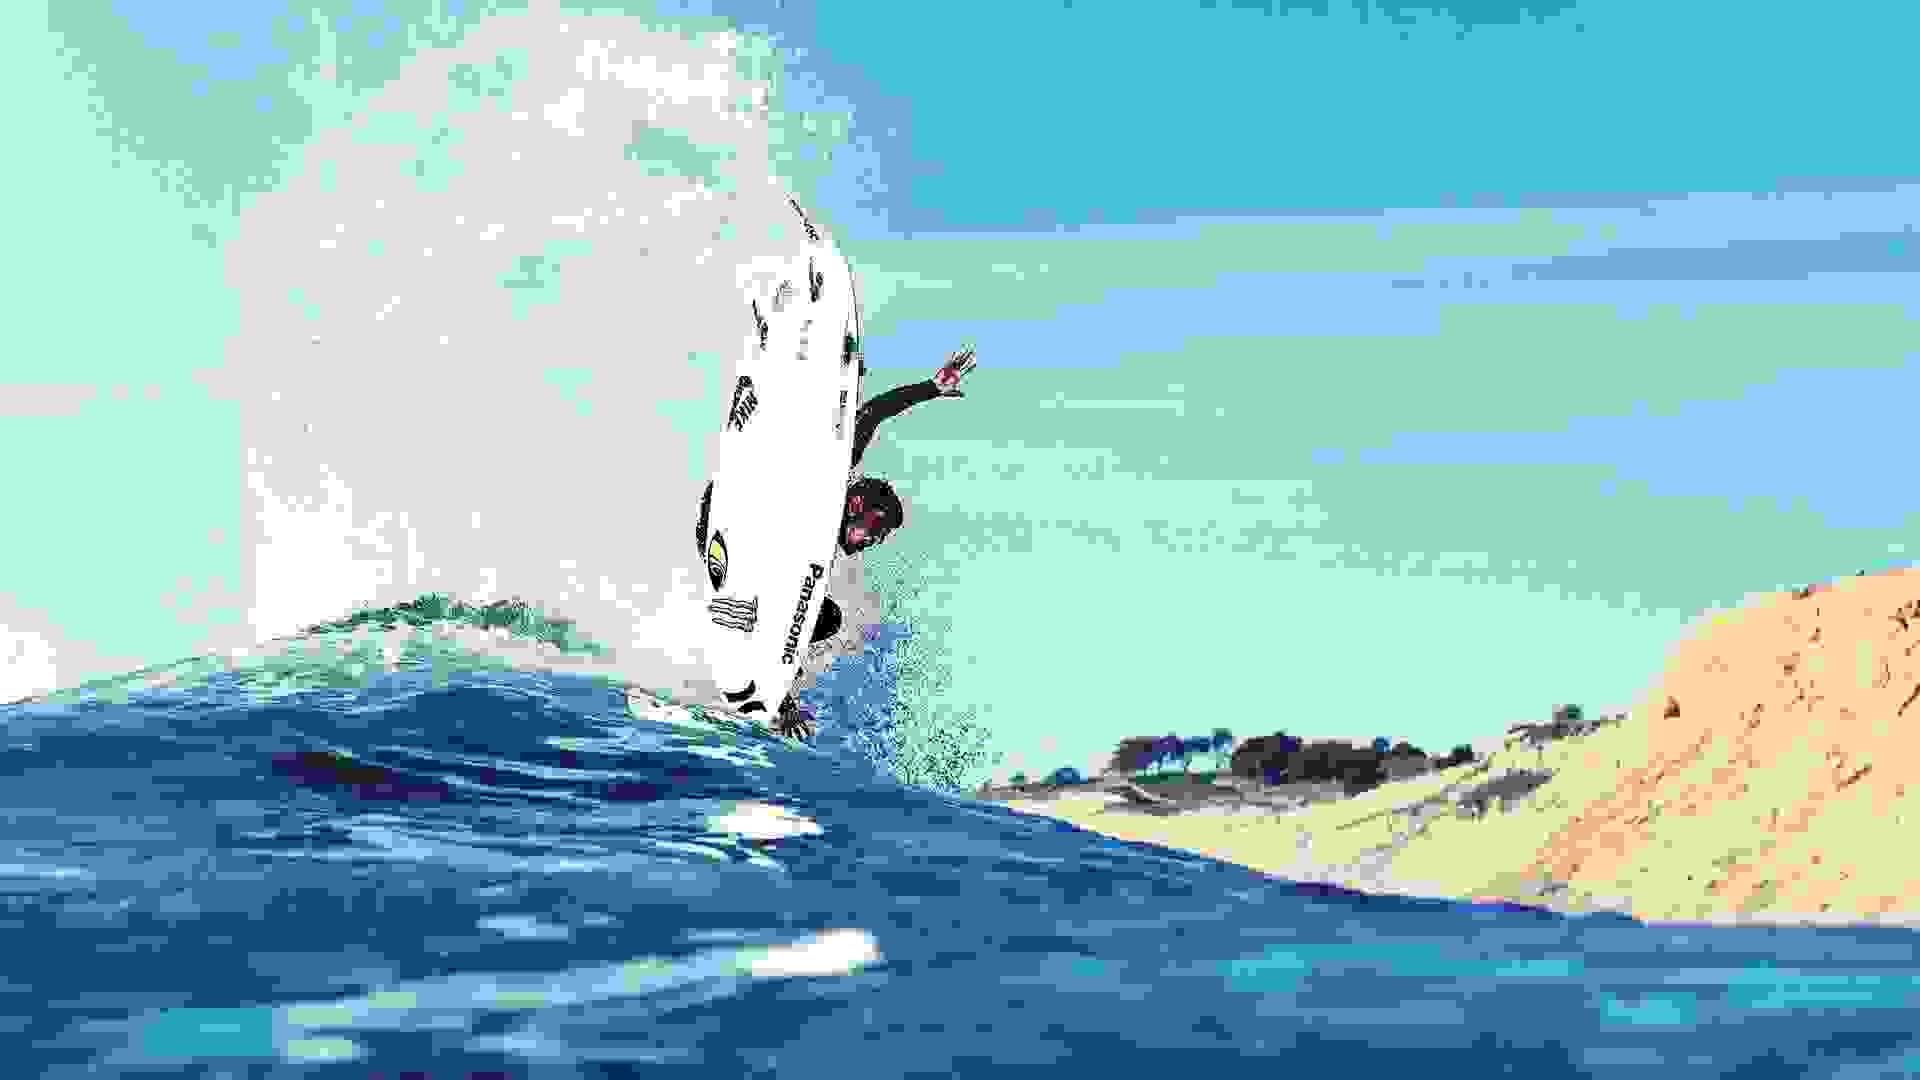 Surfer jumping on waves